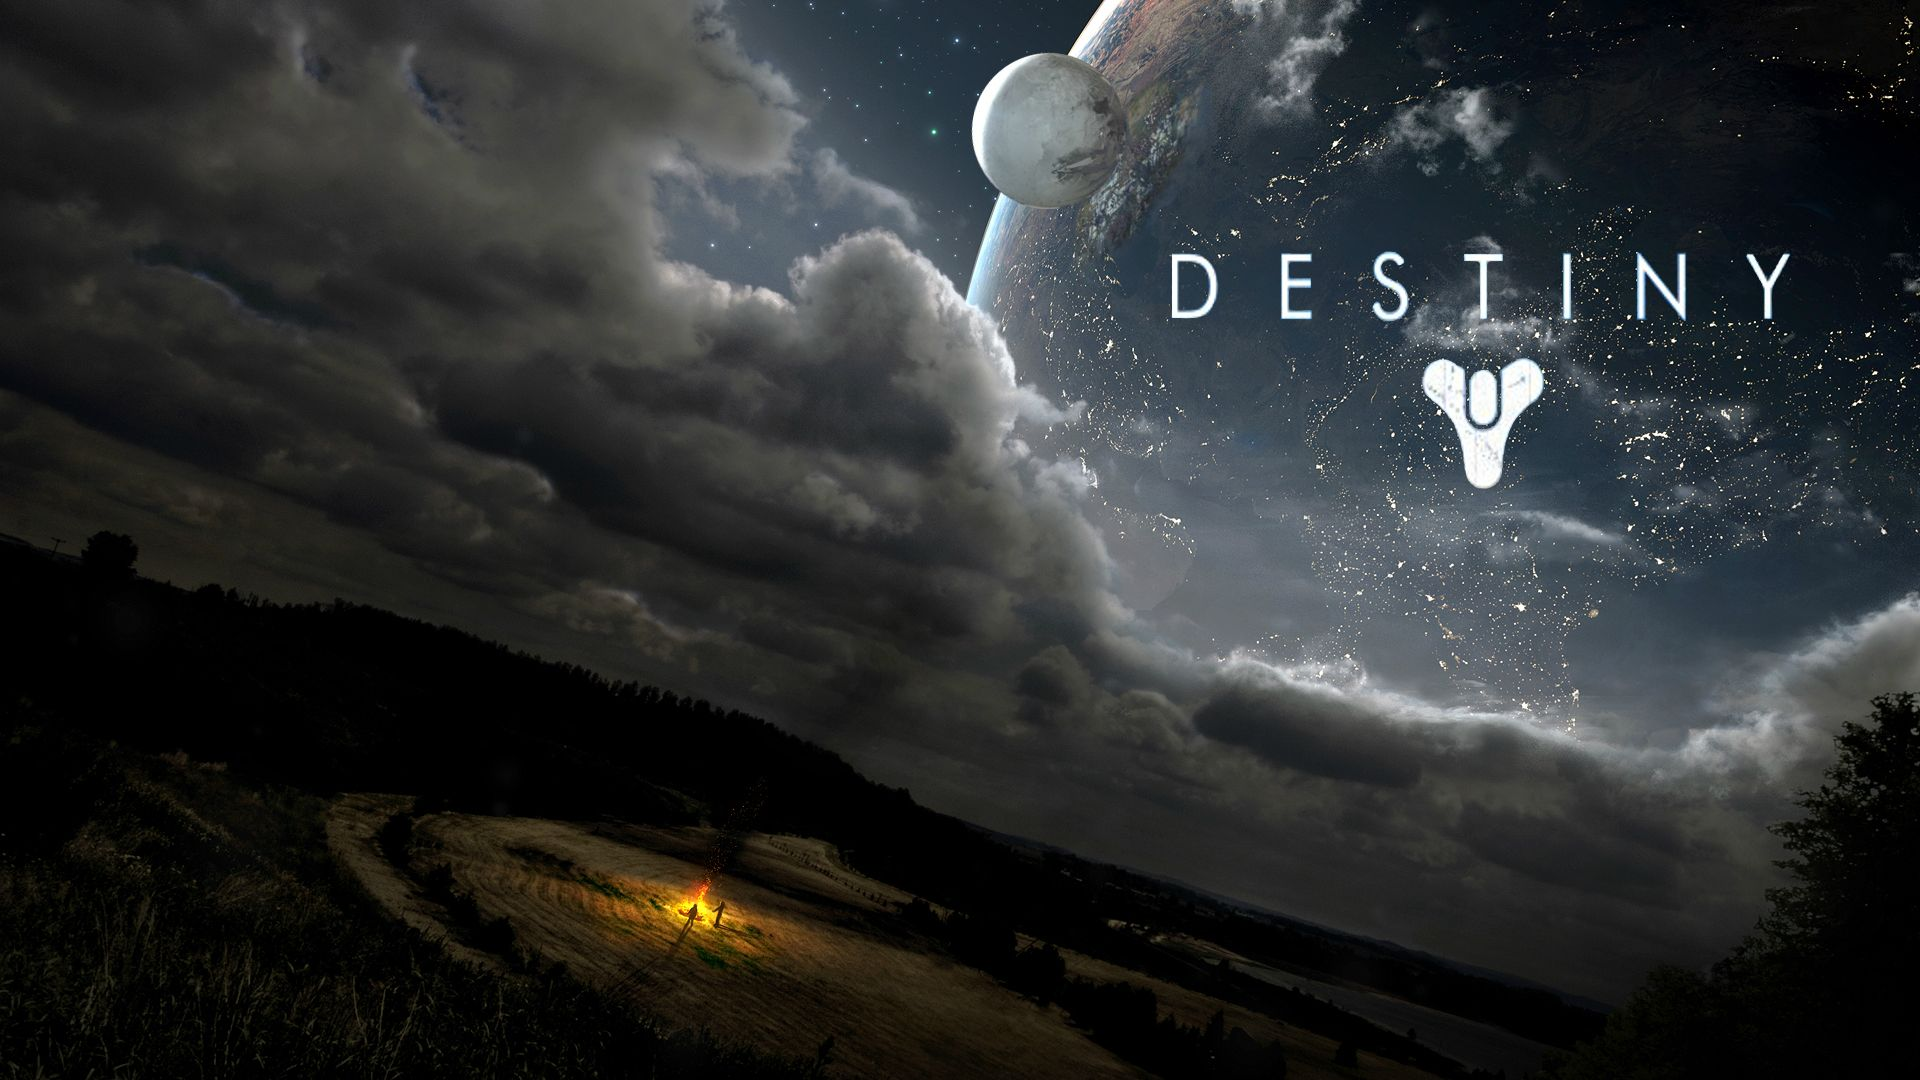 Download 370 Destiny HD Wallpapers Backgrounds Wallpaper Abyss 1920x1080